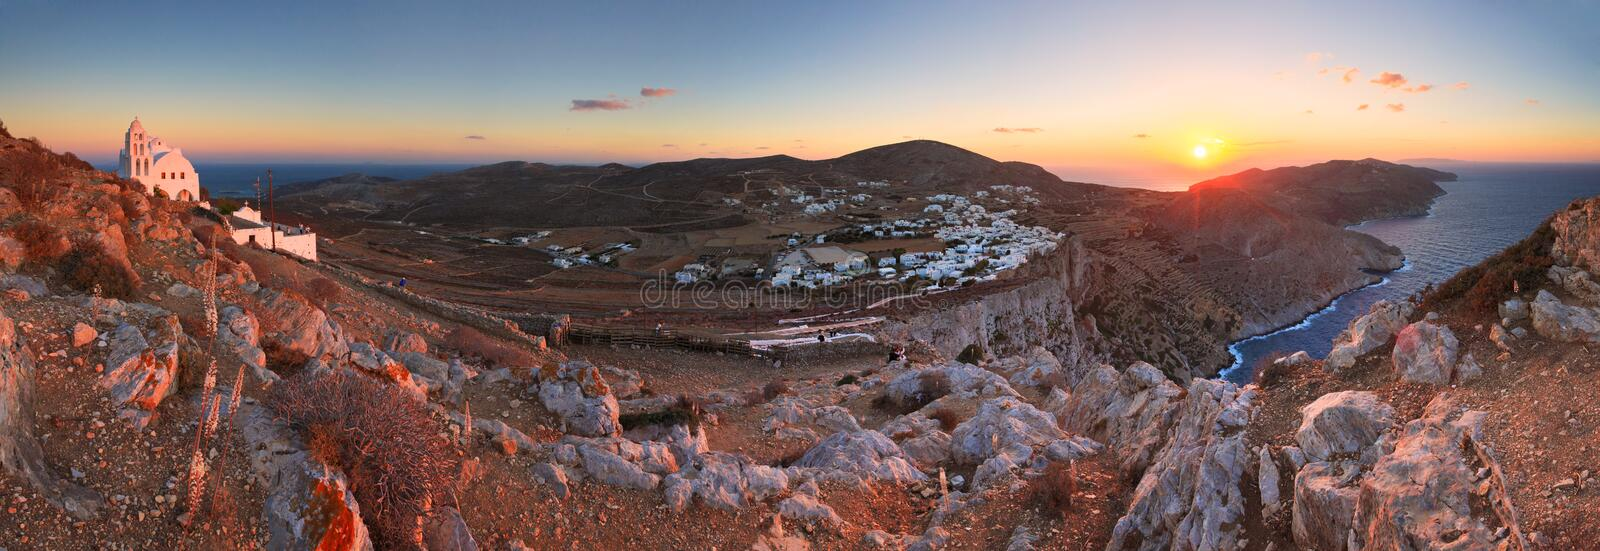 Folegandros. View of Folegandros village and surrounding landscape stock photography